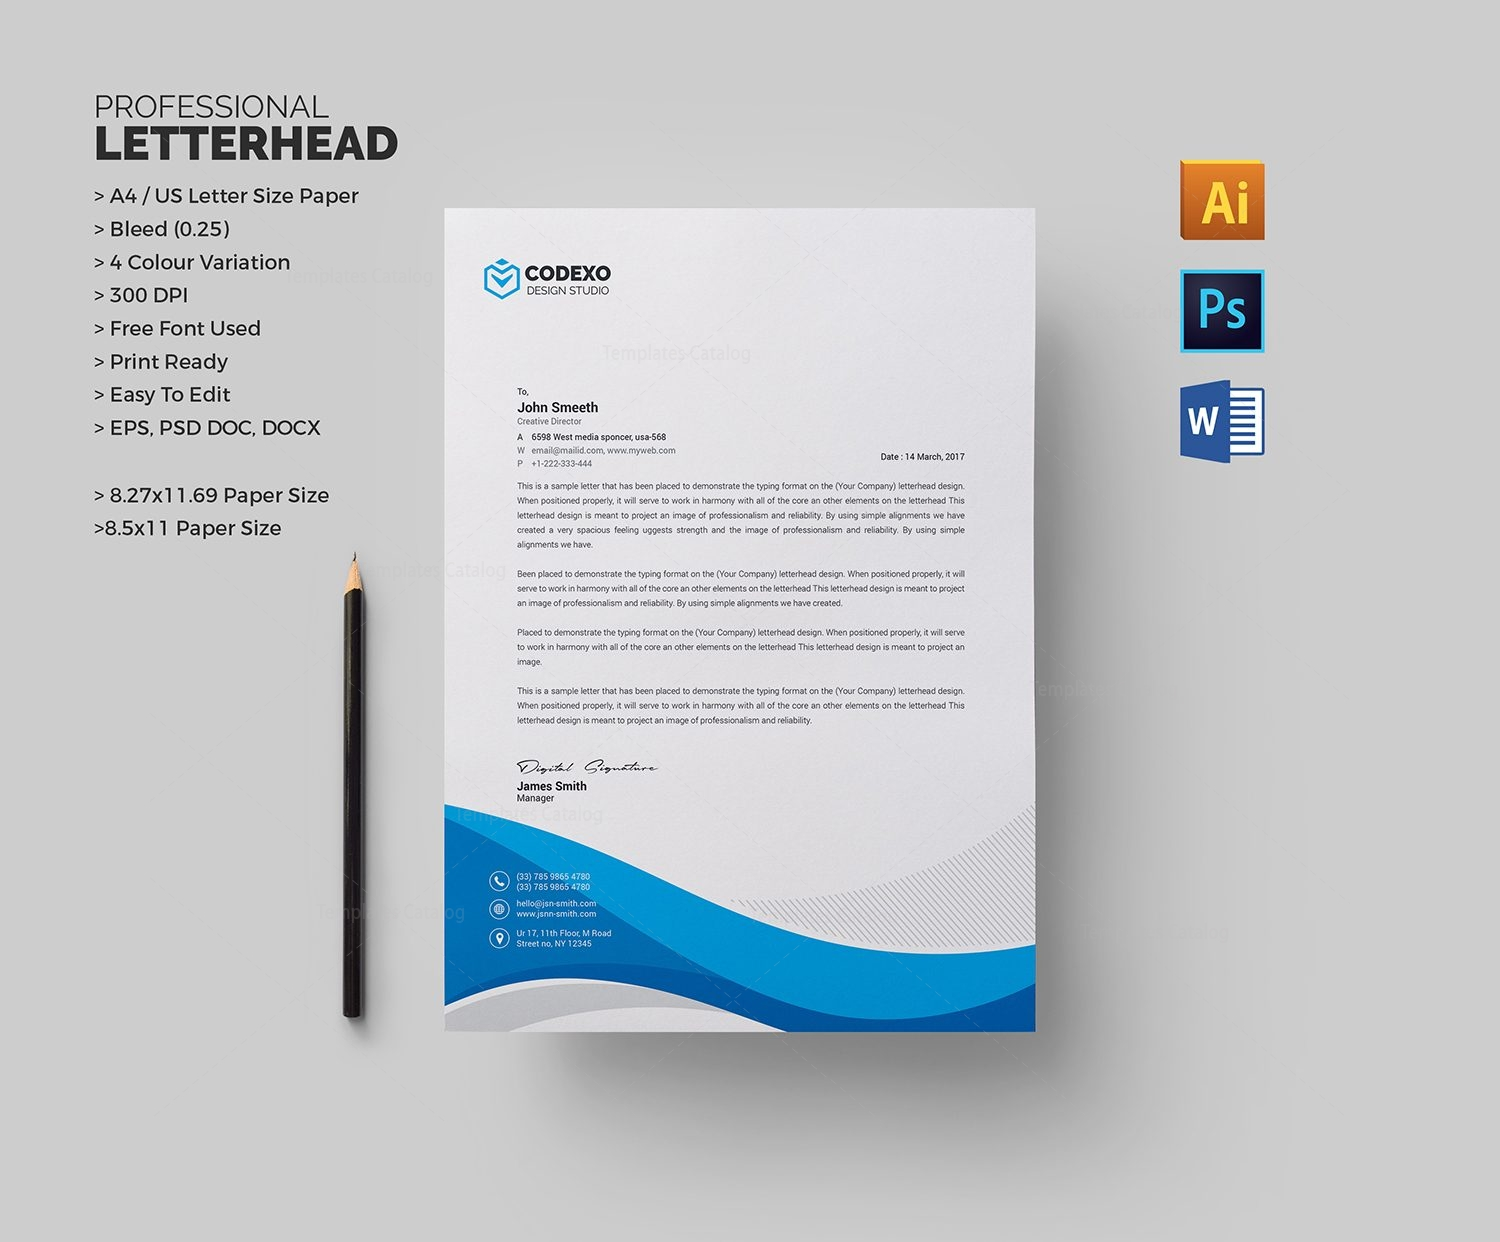 Professional Letterhead Sample 1